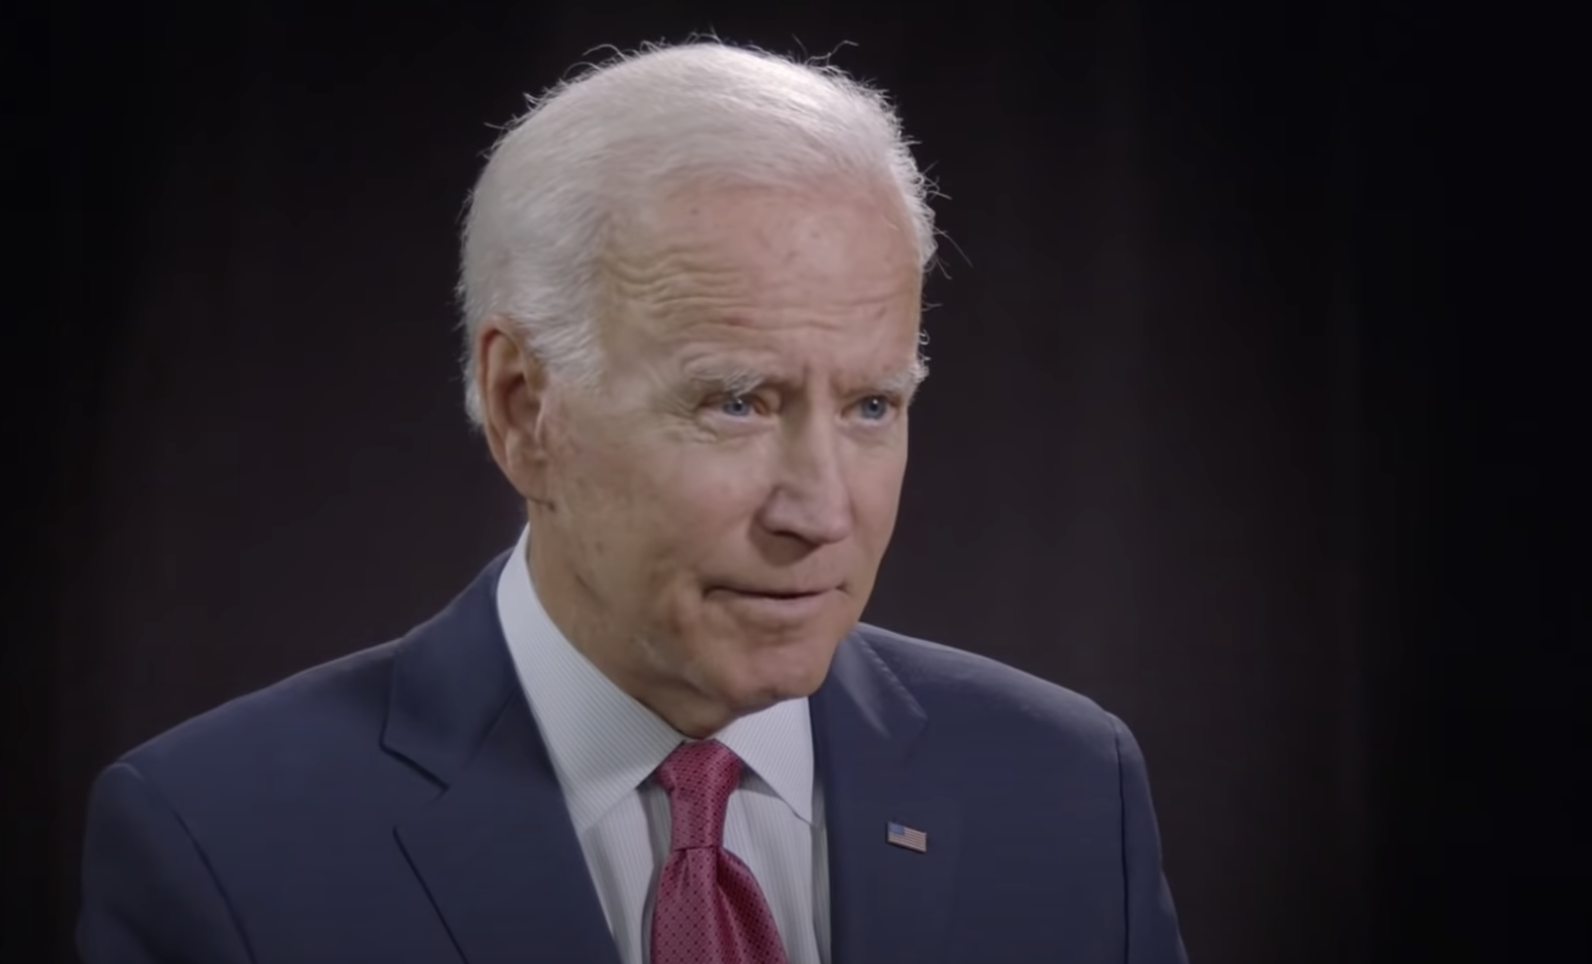 Joe Biden opposes school choice, will not fund private charter schools